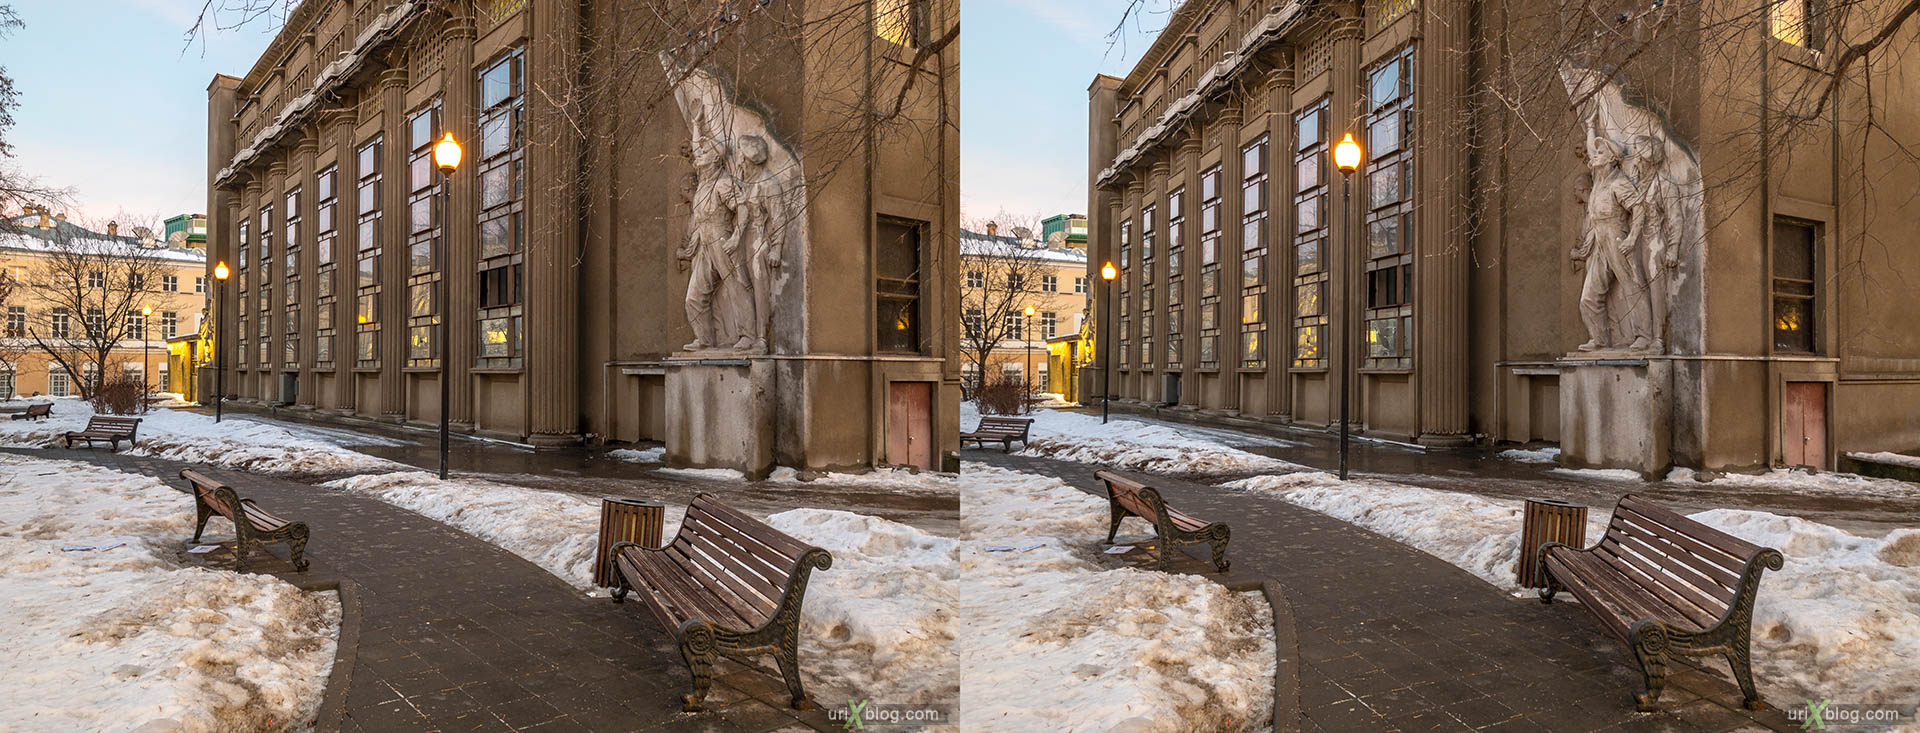 Moscow Builders Square, T-3 Moscow Metro Central Traction Substation, Bolshaya Nikitskaya street, Moscow, Russia, 3D, stereo pair, cross-eyed, crossview, cross view stereo pair, stereoscopic